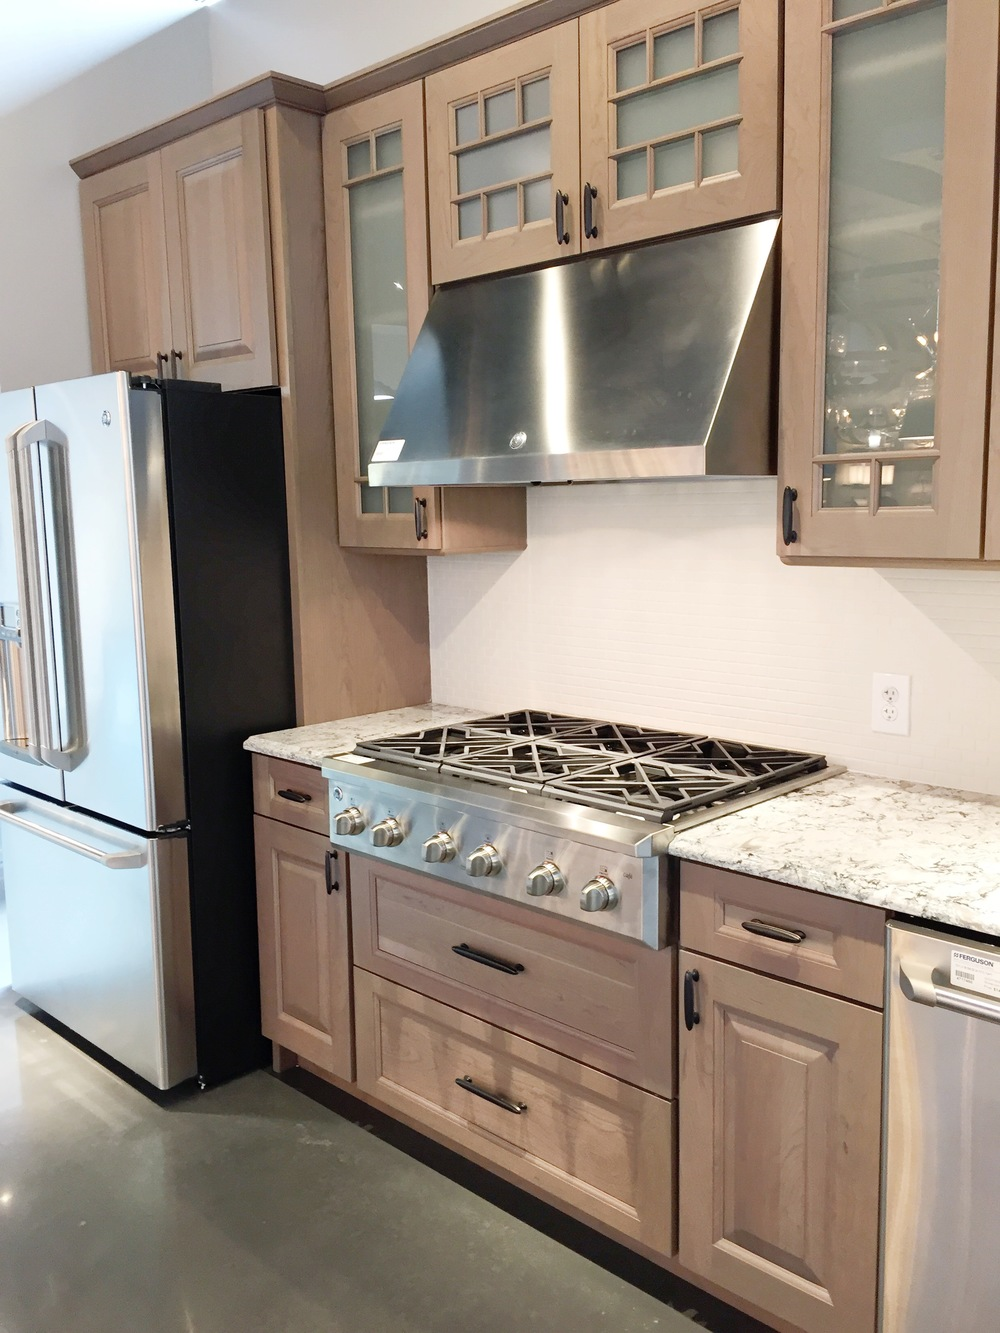 Kitchen Appliance Combos 5 Things That Surprised Me At The Kitchen Showroom Blue Door Living